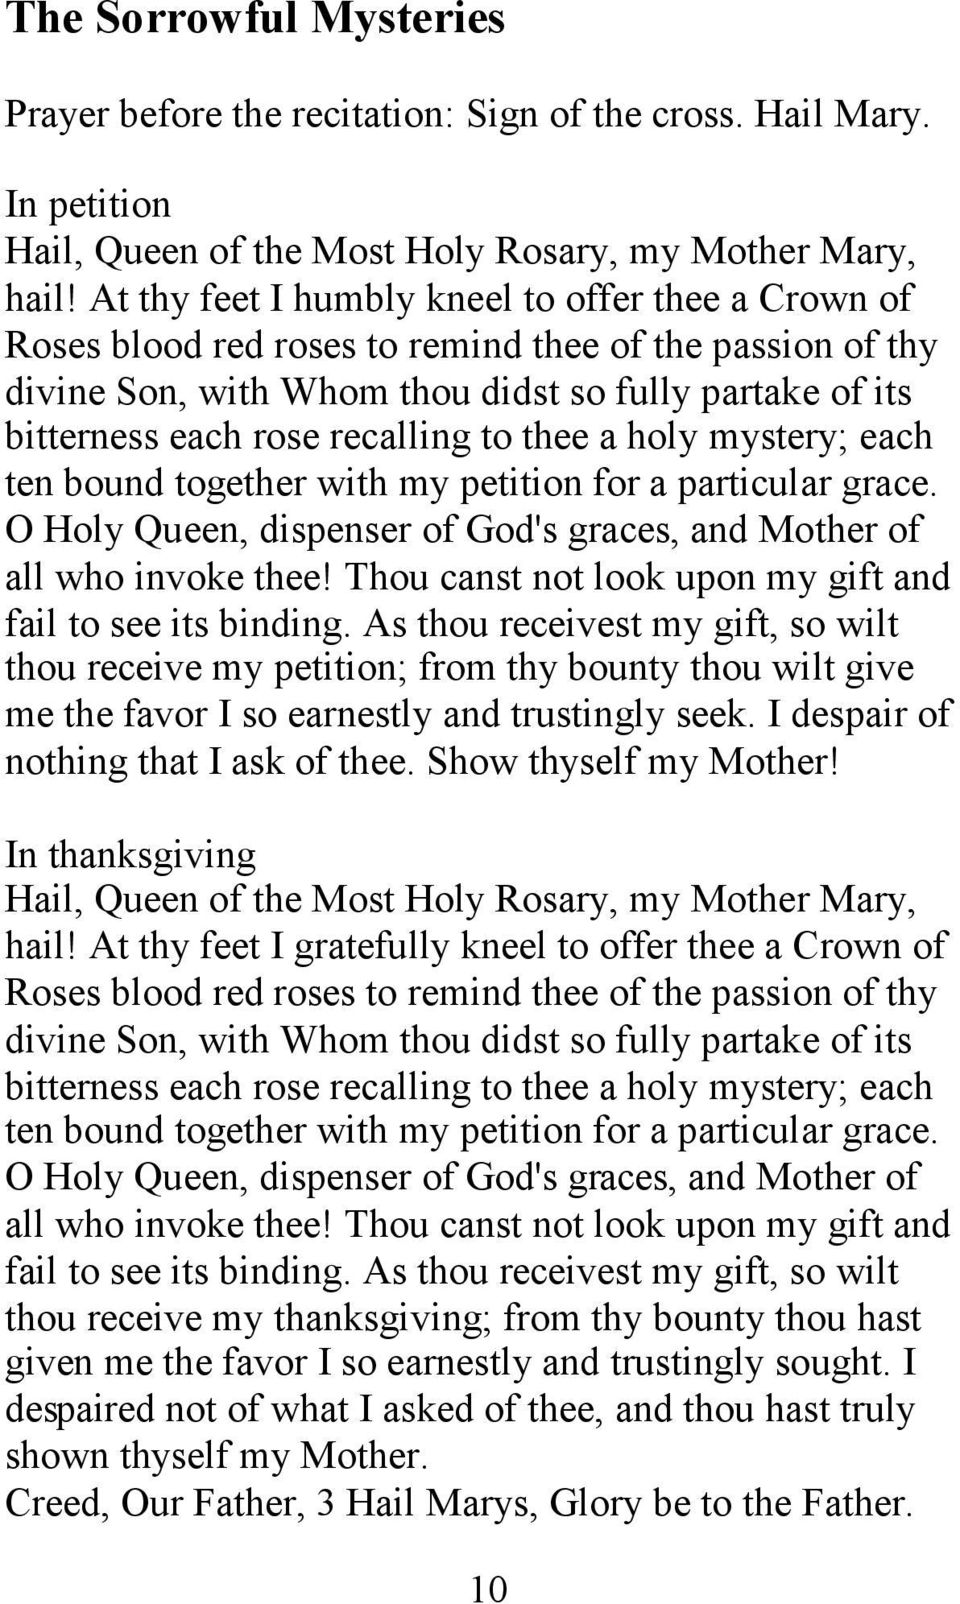 to thee a holy mystery; each ten bound together with my petition for a particular grace. O Holy Queen, dispenser of God's graces, and Mother of all who invoke thee!